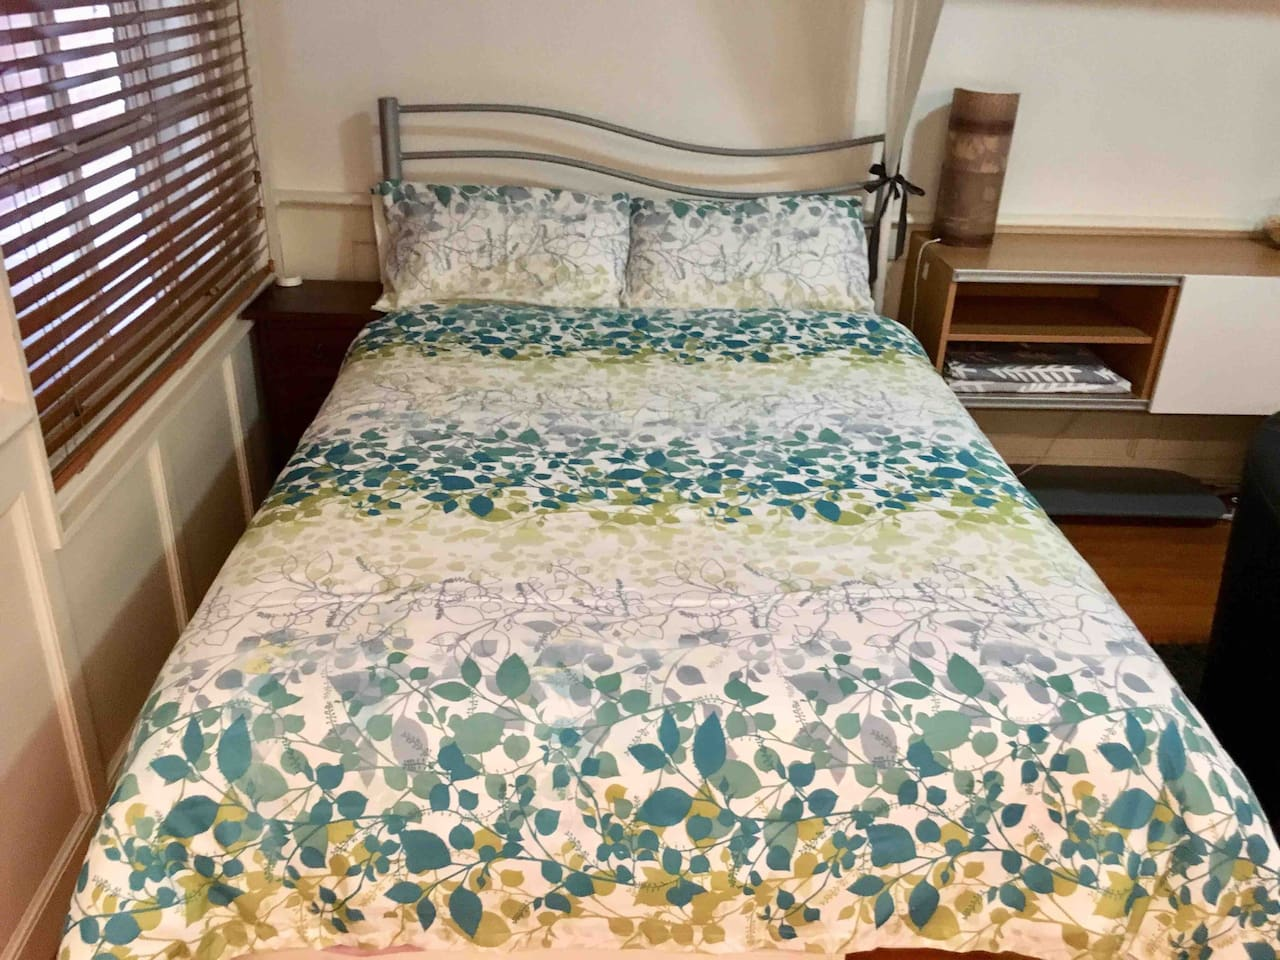 TOP QUALITY Matress for relaxing nights sleep